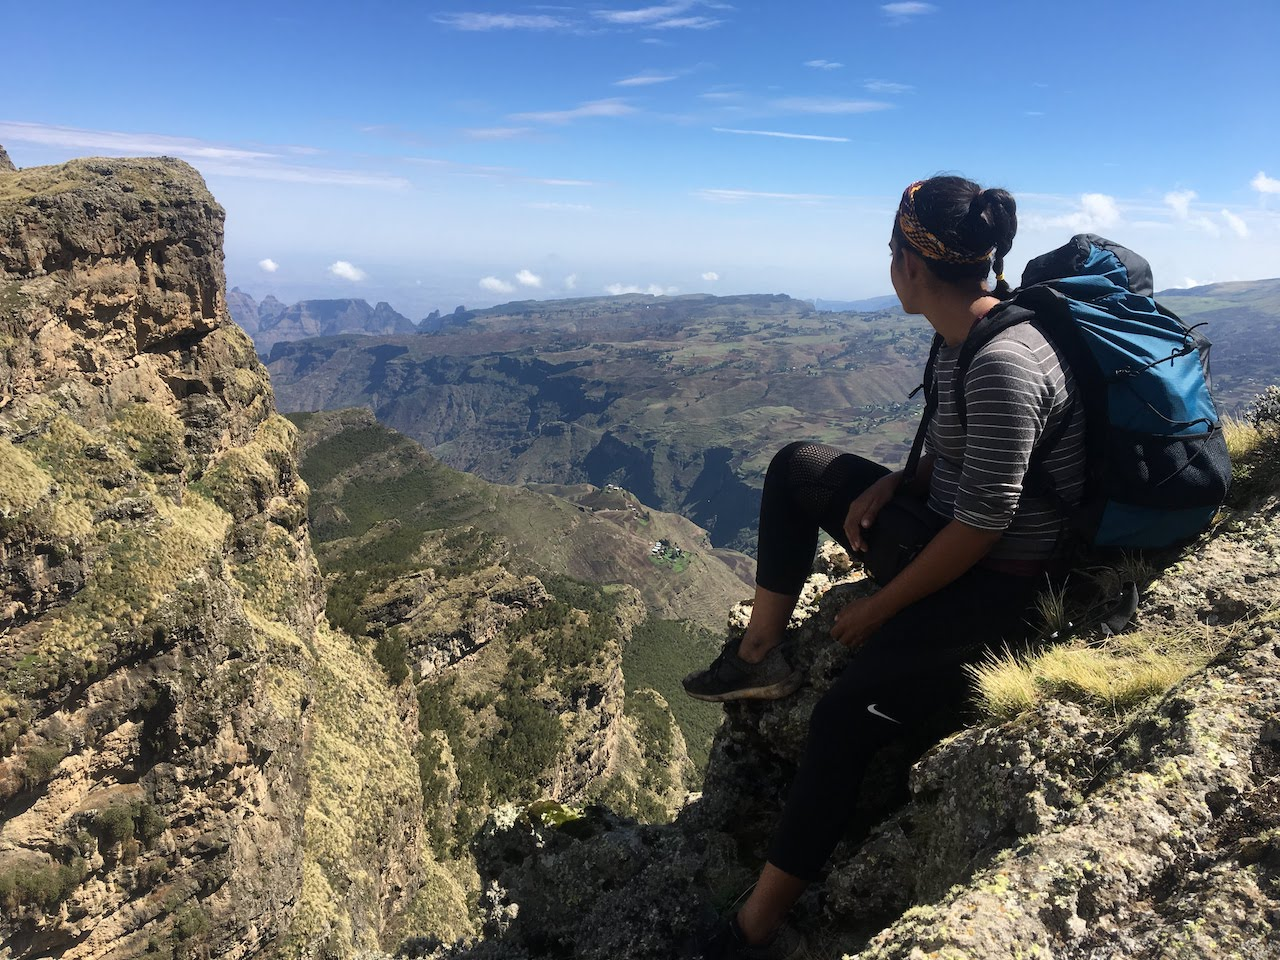 Trekking-Ethiopias-Simien-Mountains-Mafia-AK-47s-and-a-Park-at-Risk-backpacker-sitting-canyon